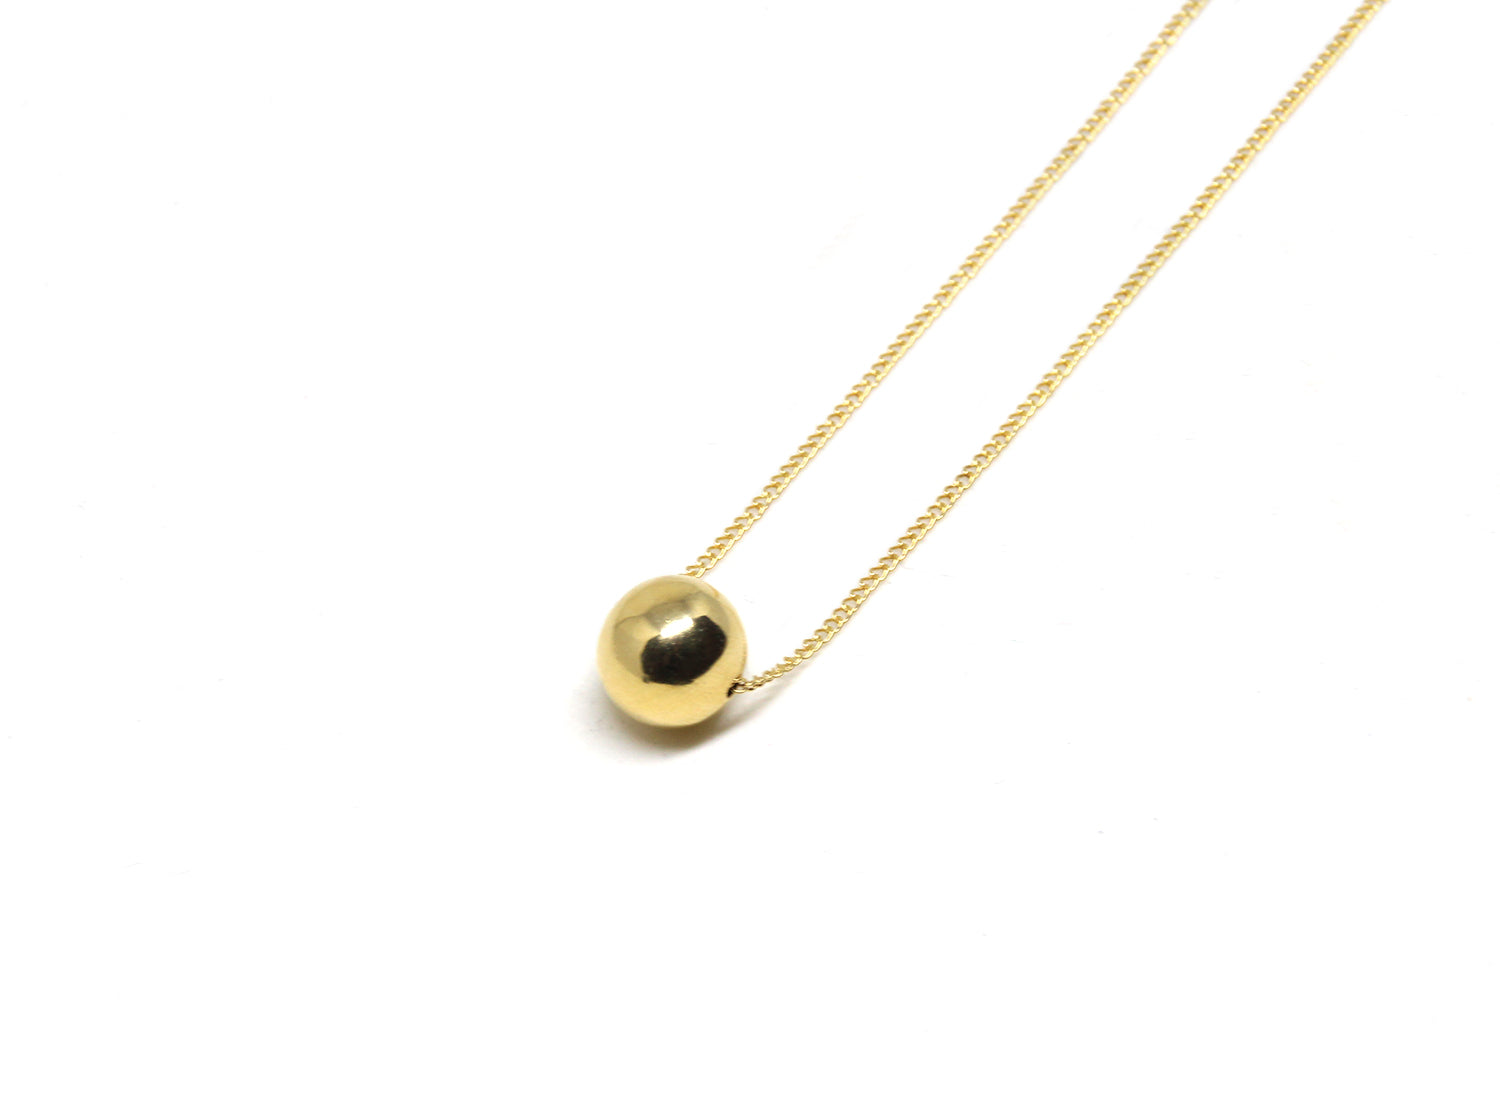 llayers jewelry solar gold necklace with sphere - collier avec boule en or